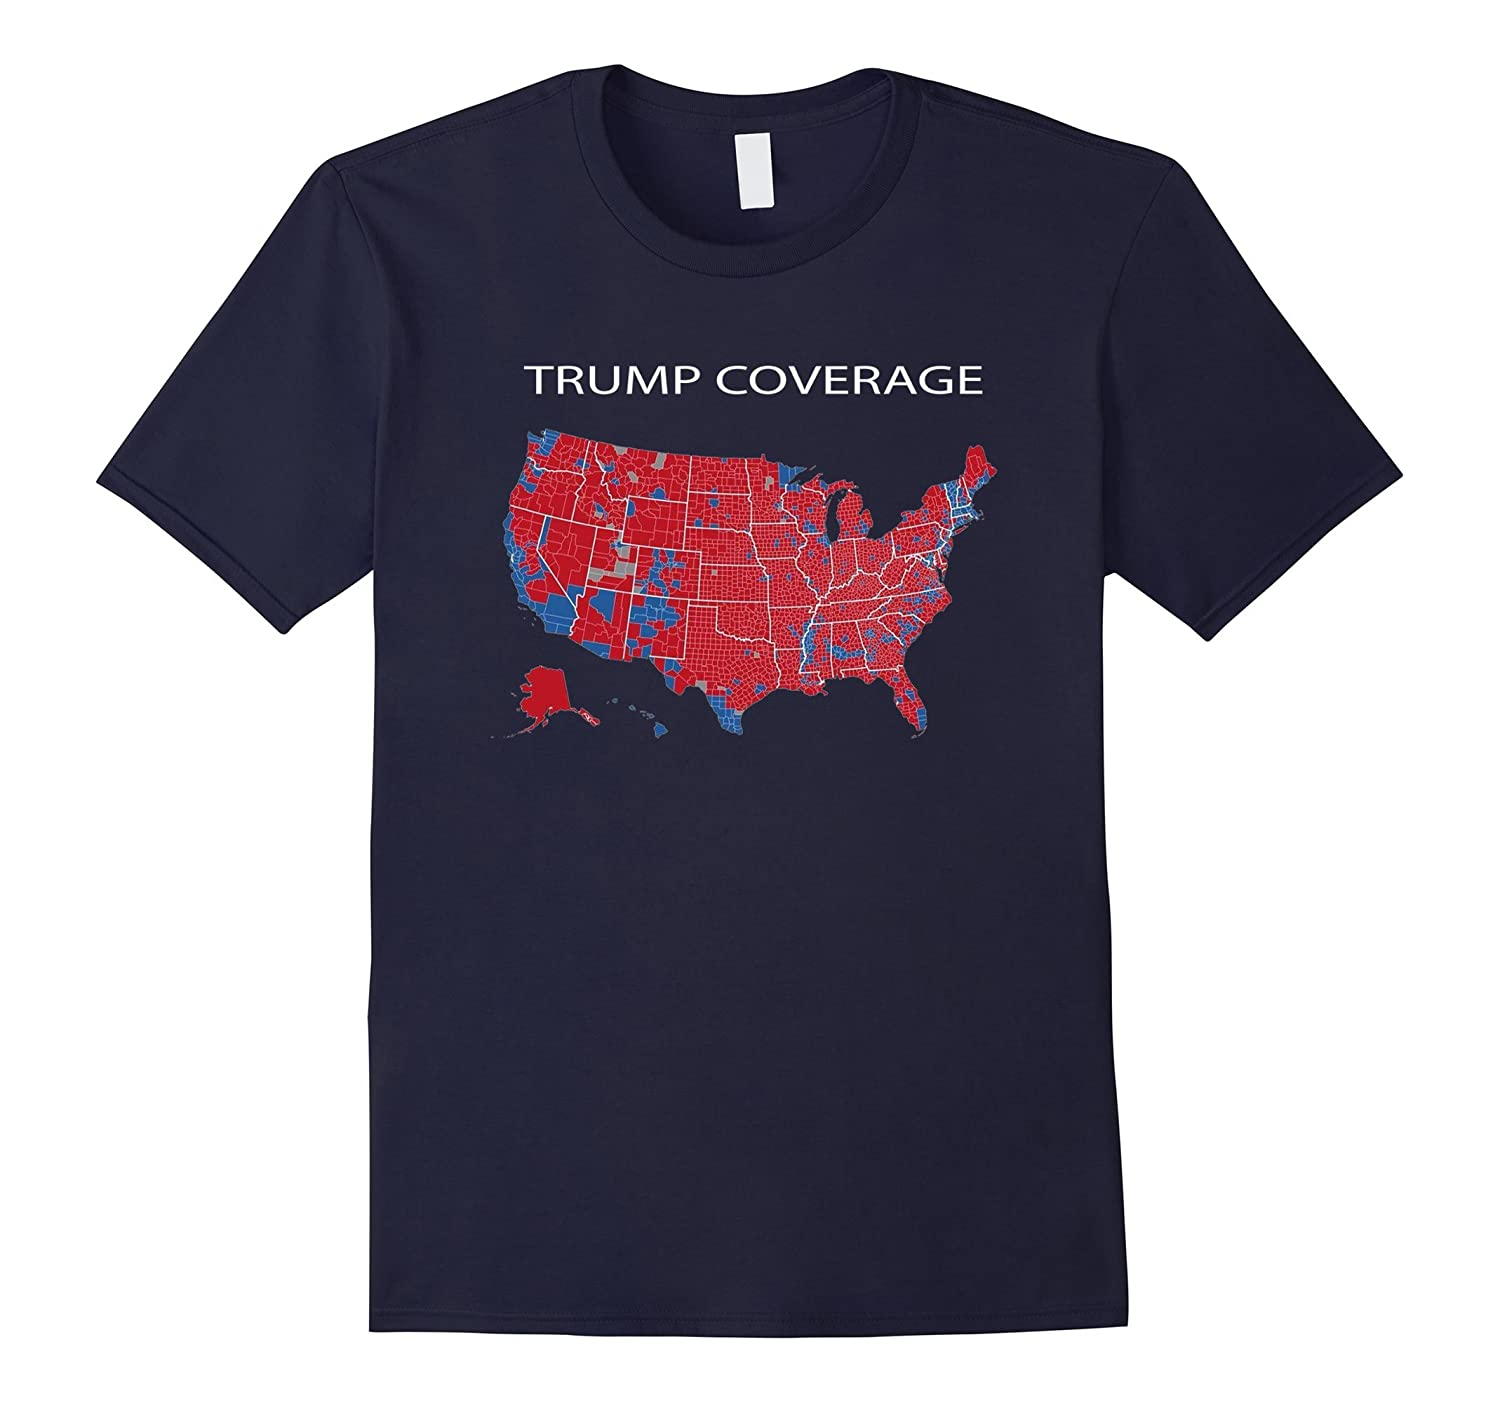 Trump Coverage T-Shirt - Electoral College Popular Vote Tee-TD